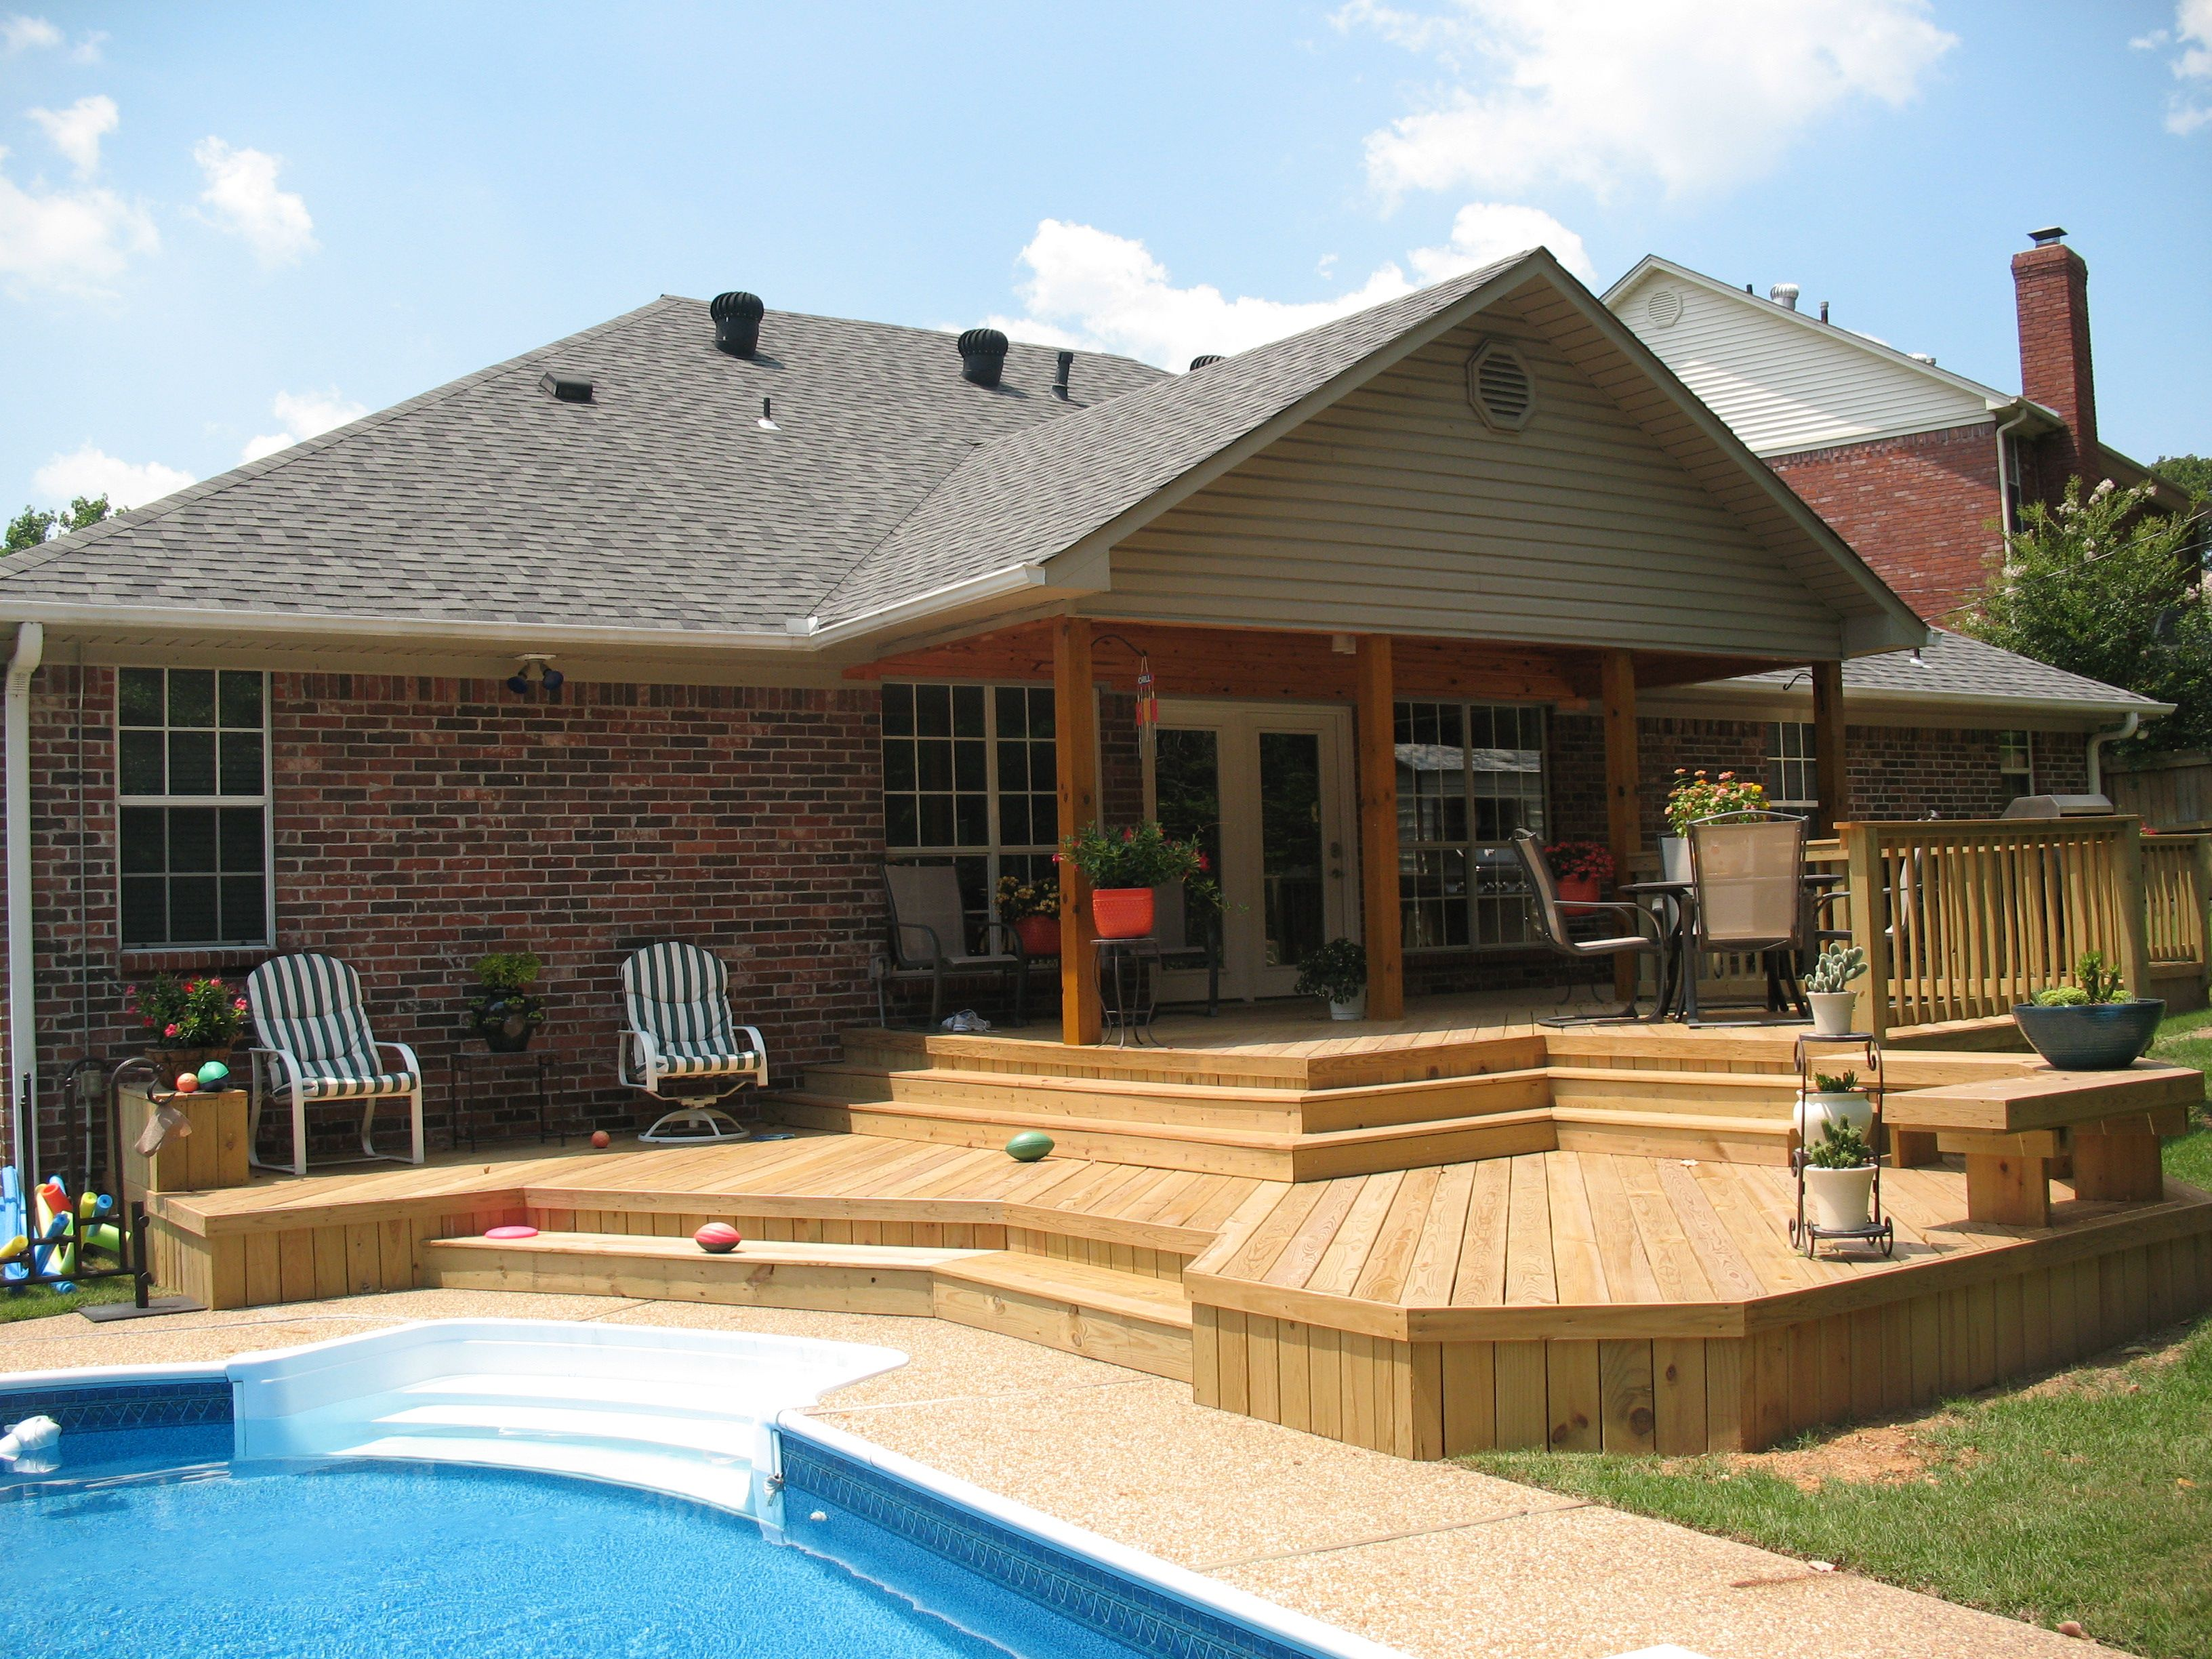 Deck Design Ideas, Pool Deck, Multi Level Deck, Deck Builder In Arkansas